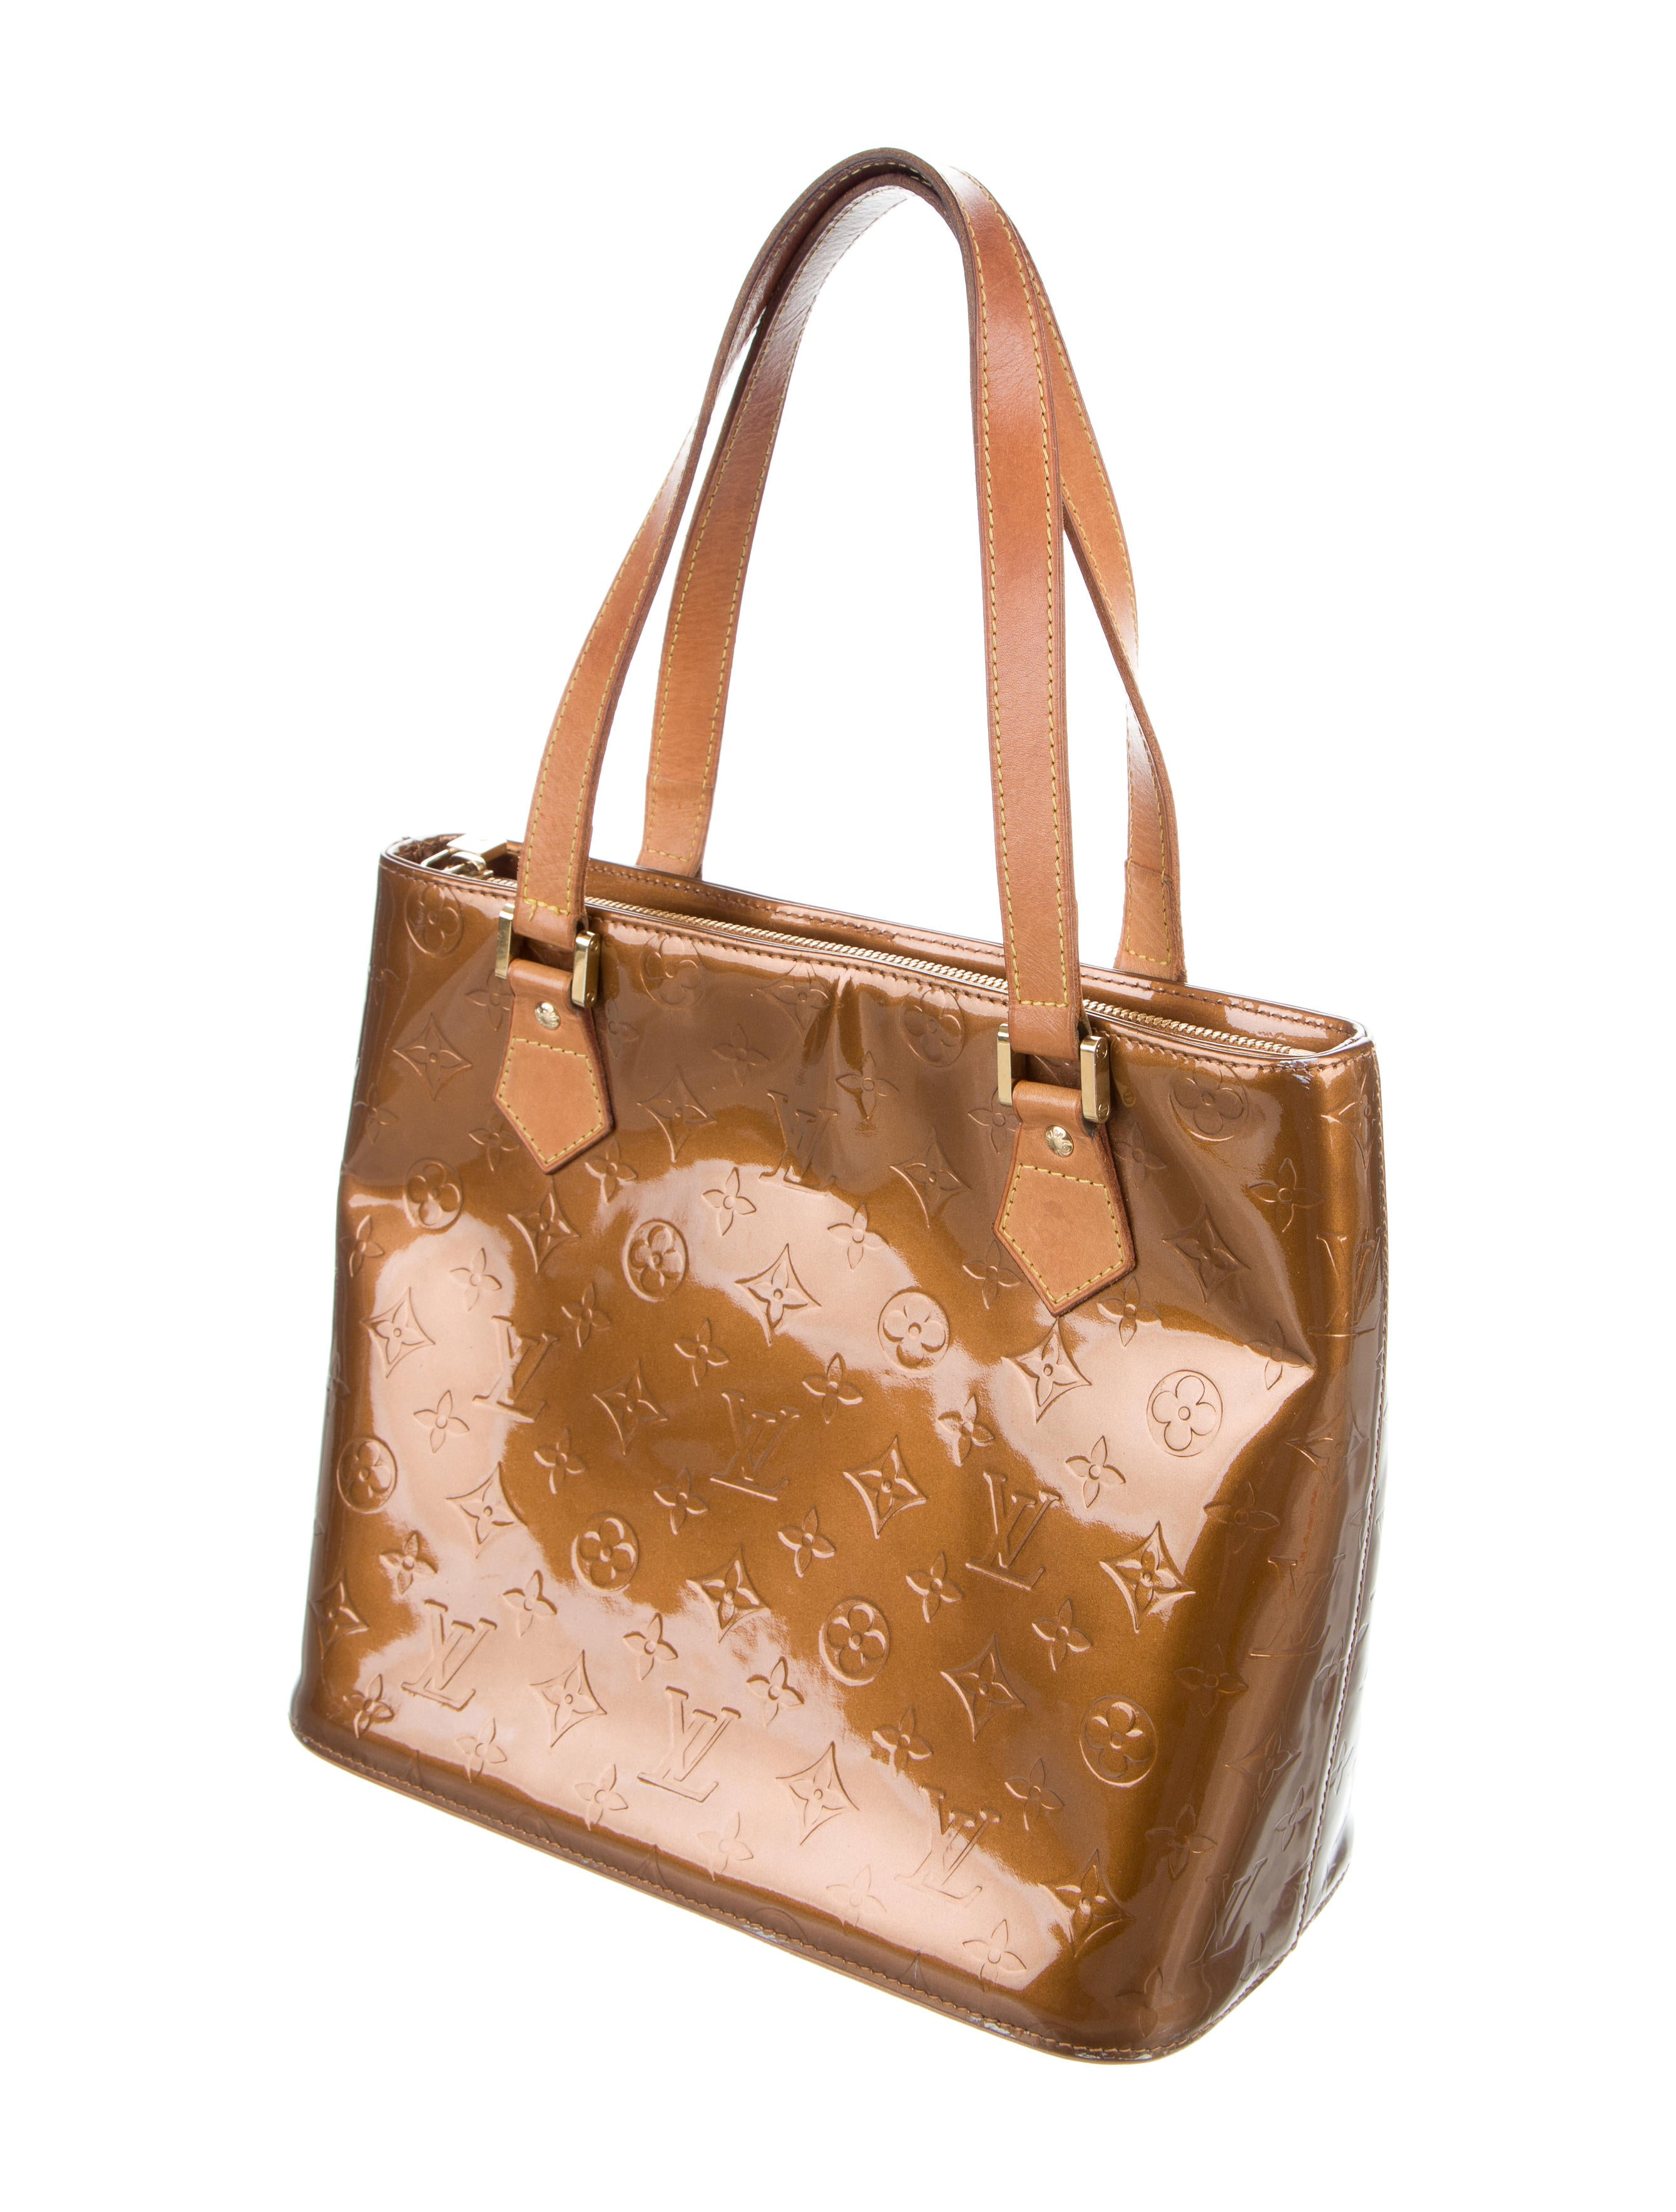 Used Louis Vuitton Purses >> Used Louis Vuitton Purses In Houston Jaguar Clubs Of North